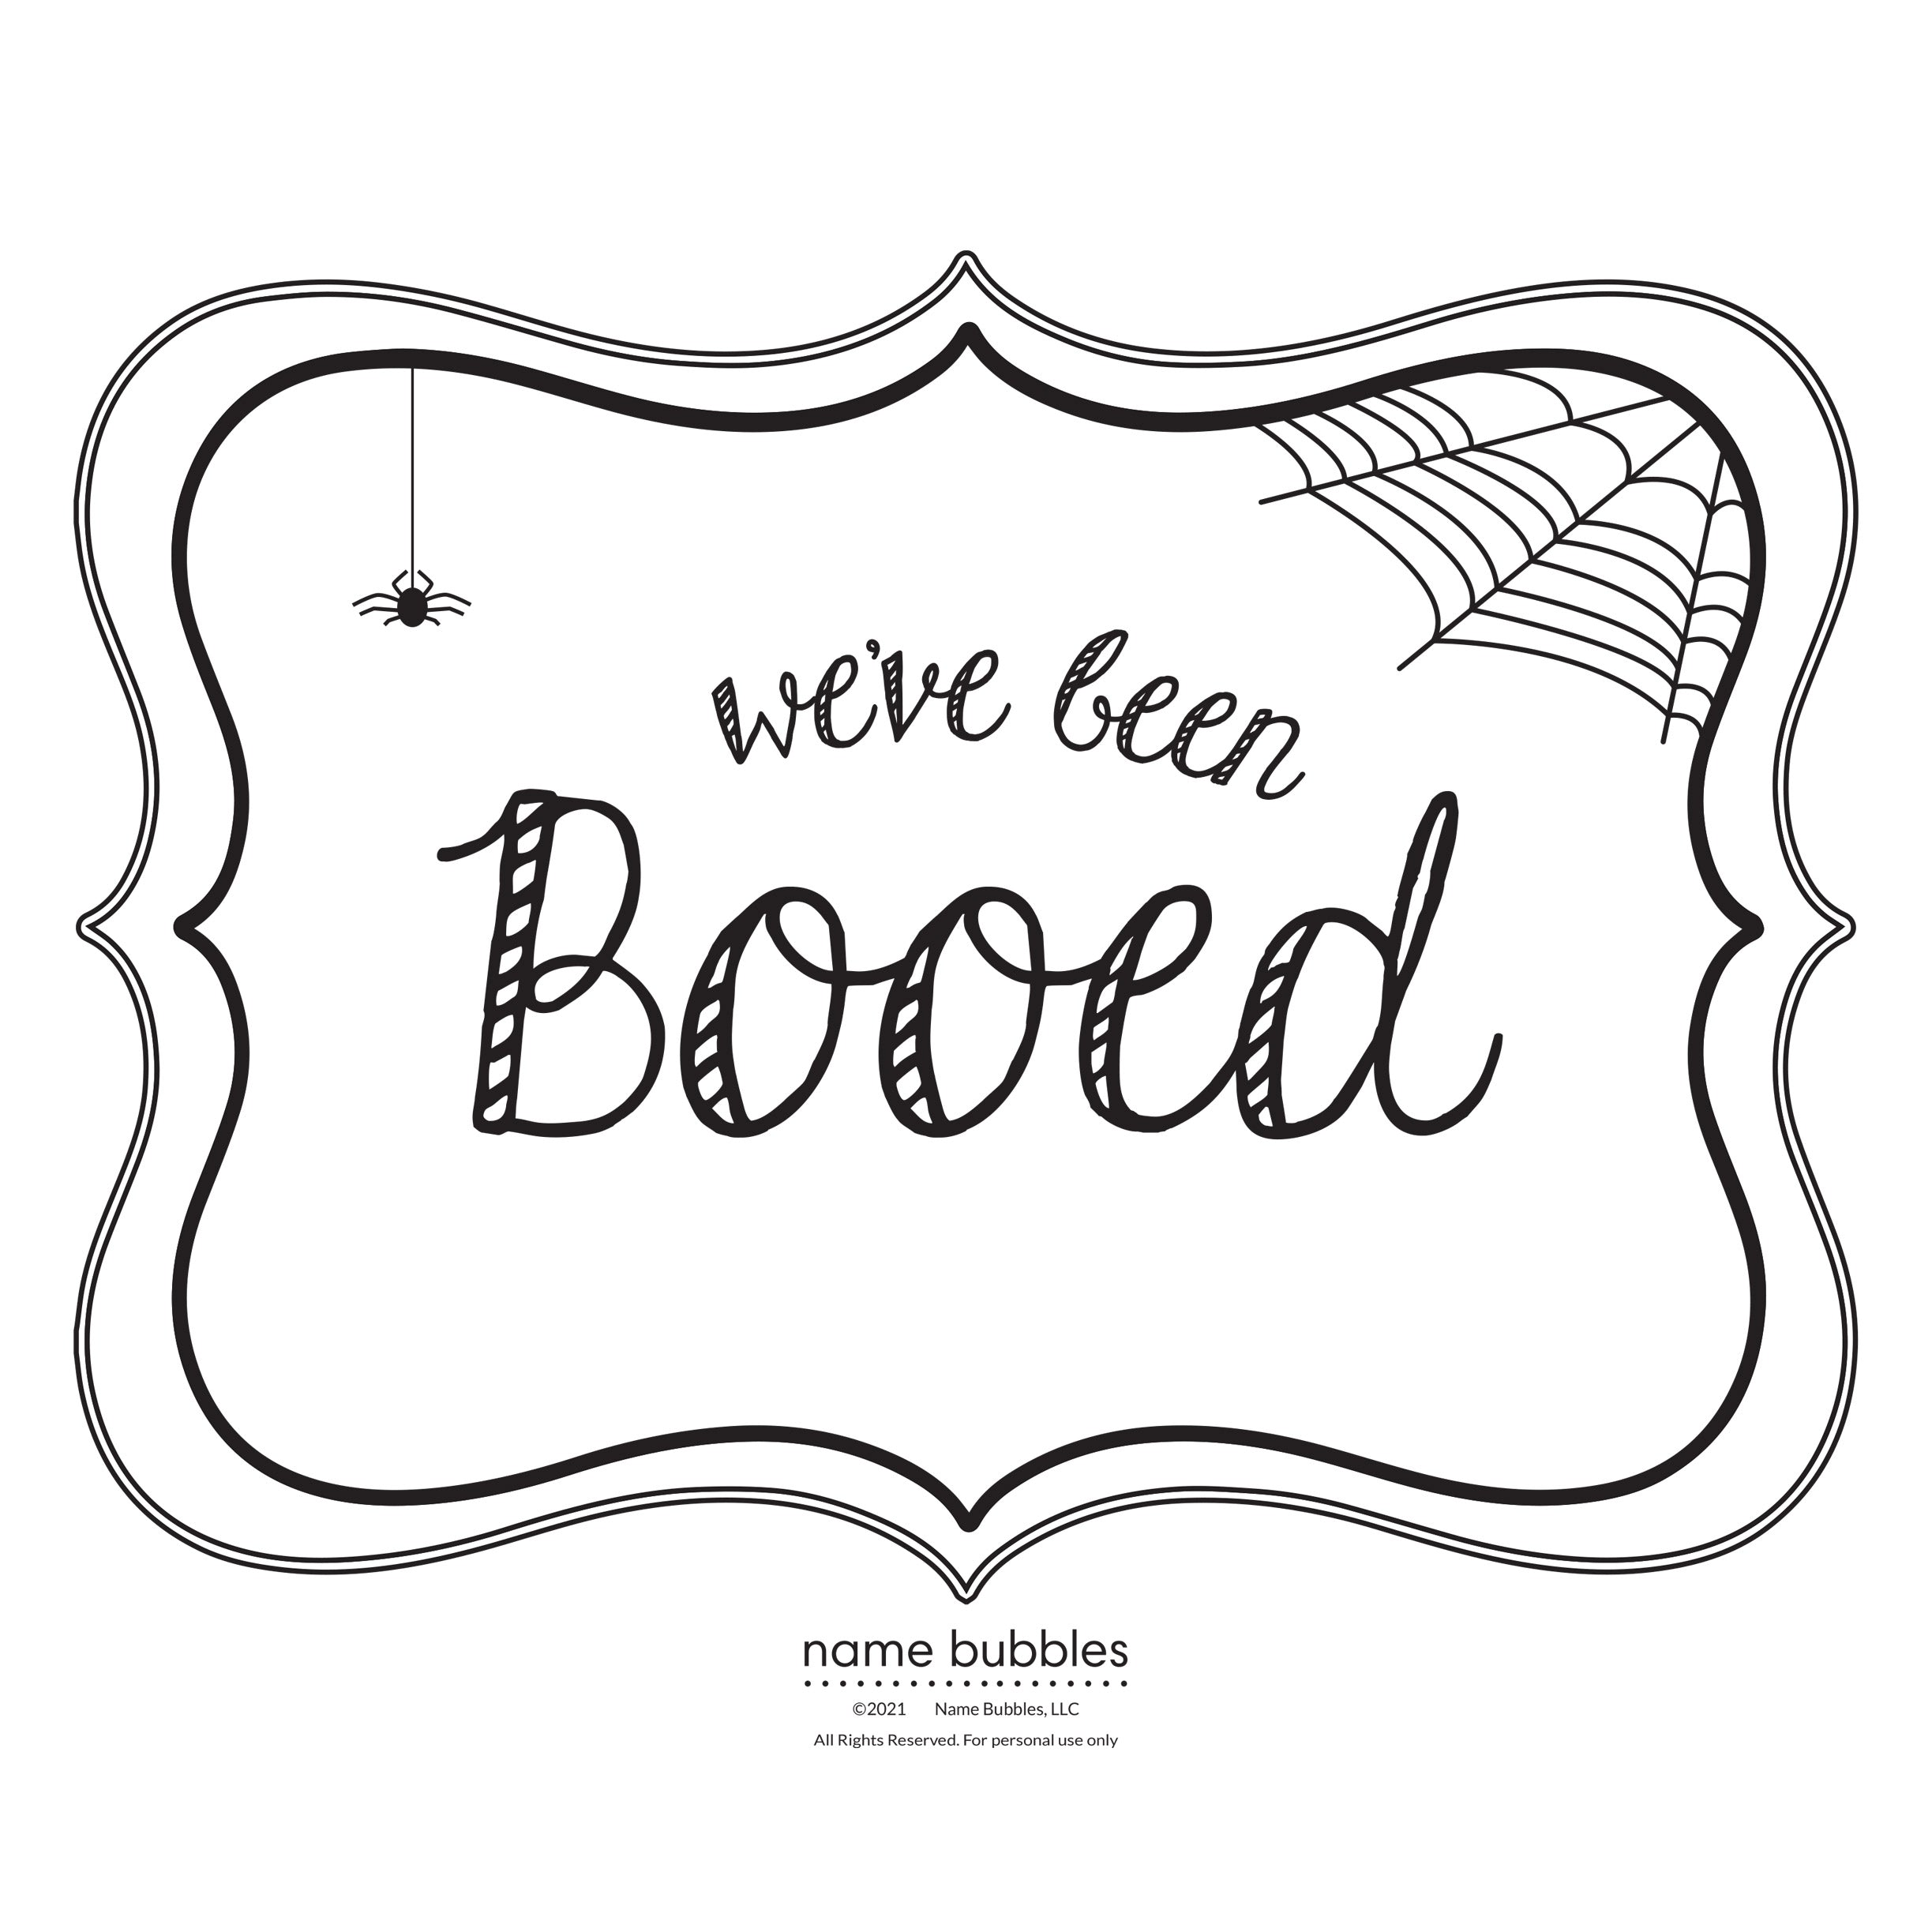 We've Been Booed - Name Bubbles Blog Image